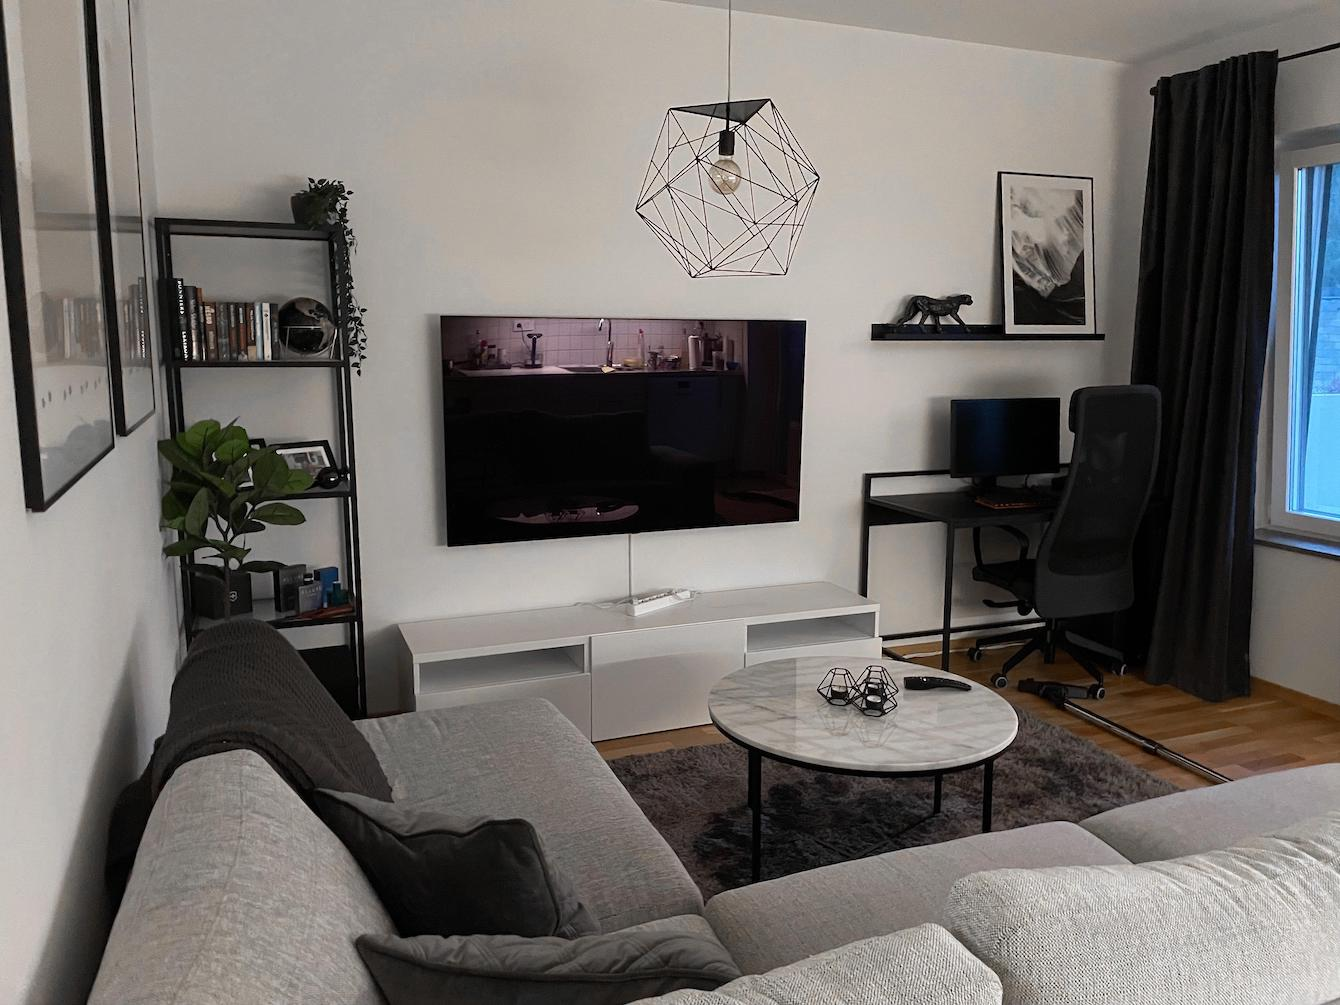 Unfinished (But Excellent) Greyscale Living Room